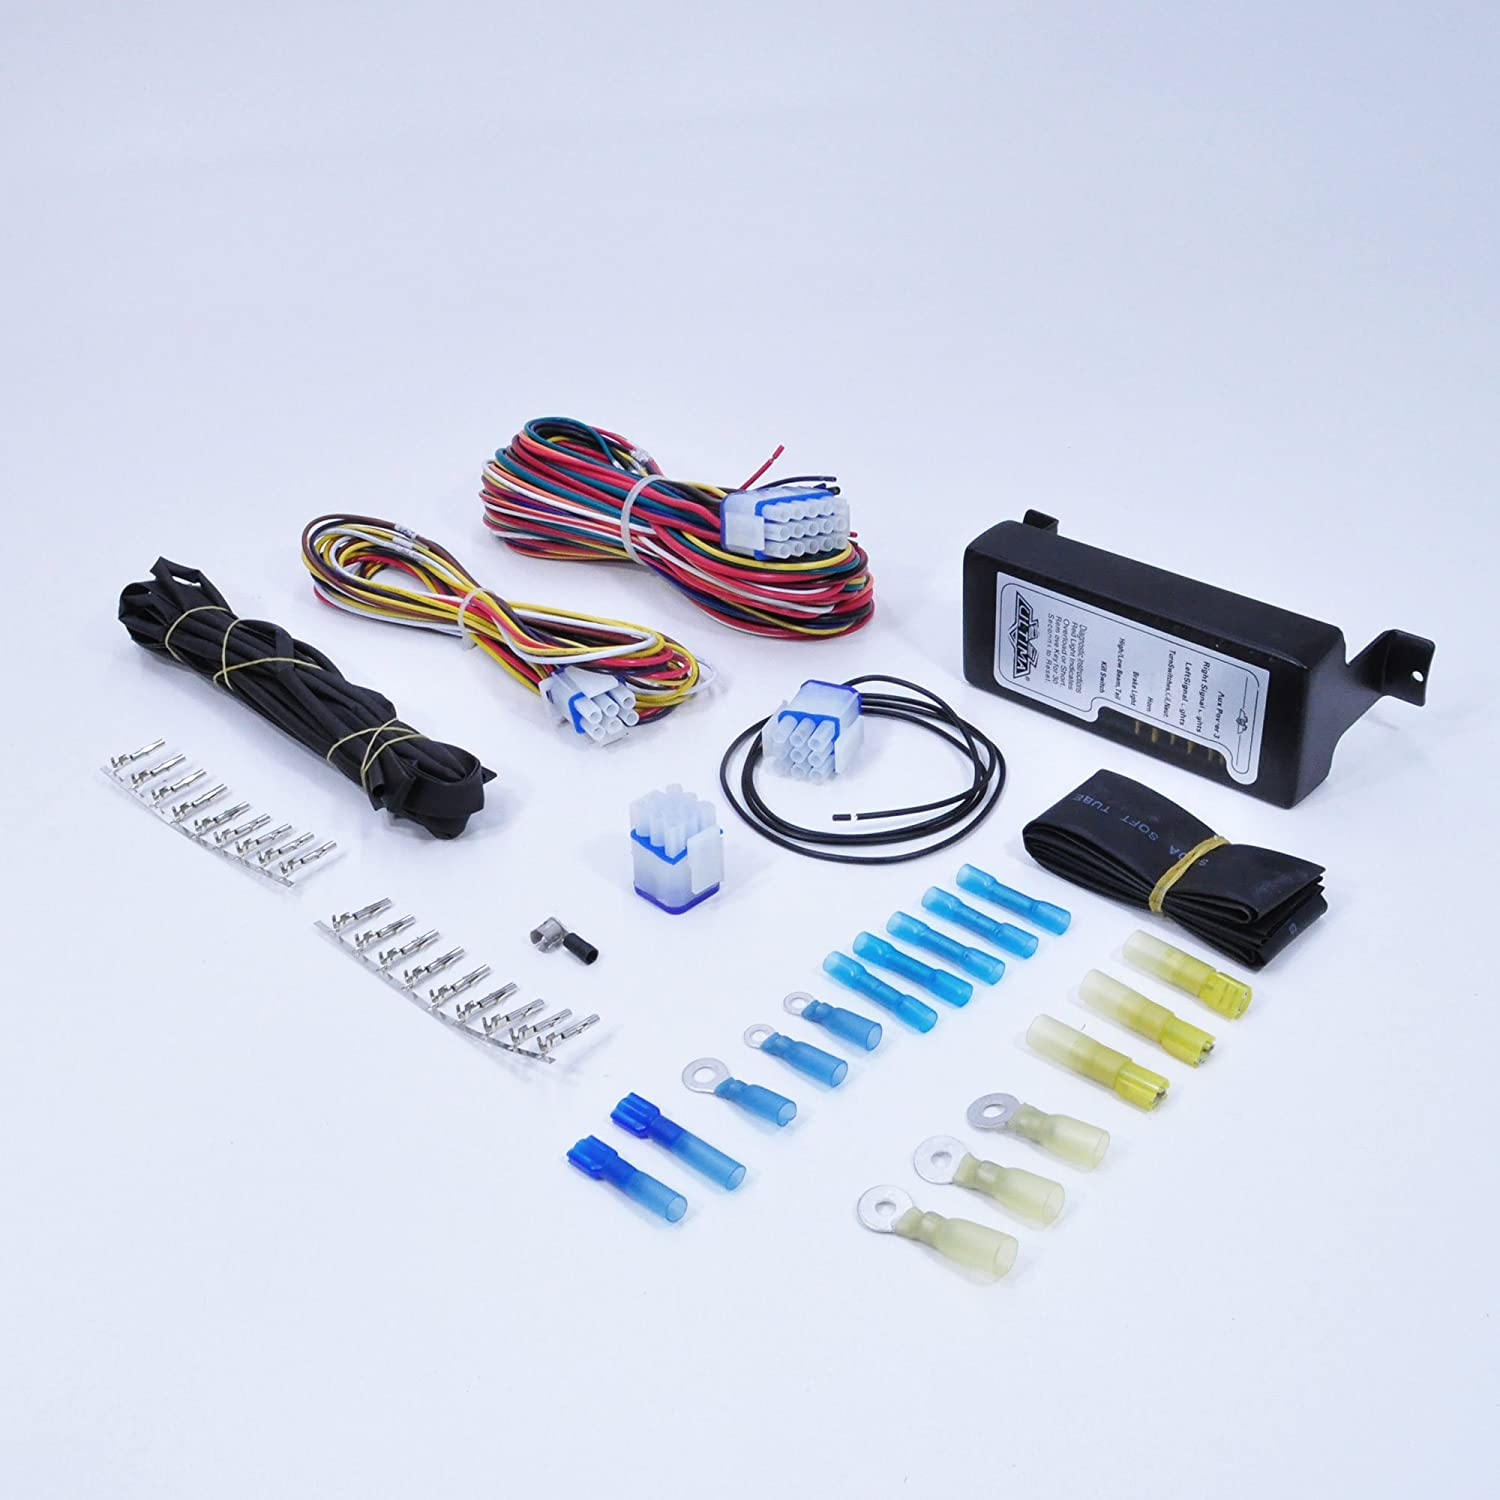 Amazon.com: Complete Motorcycle Wiring Harness Kit Electrical System -  Waterproof with Diagnostic LED's - Motorcycle Harley Chopper Bobber Wire:  Automotive